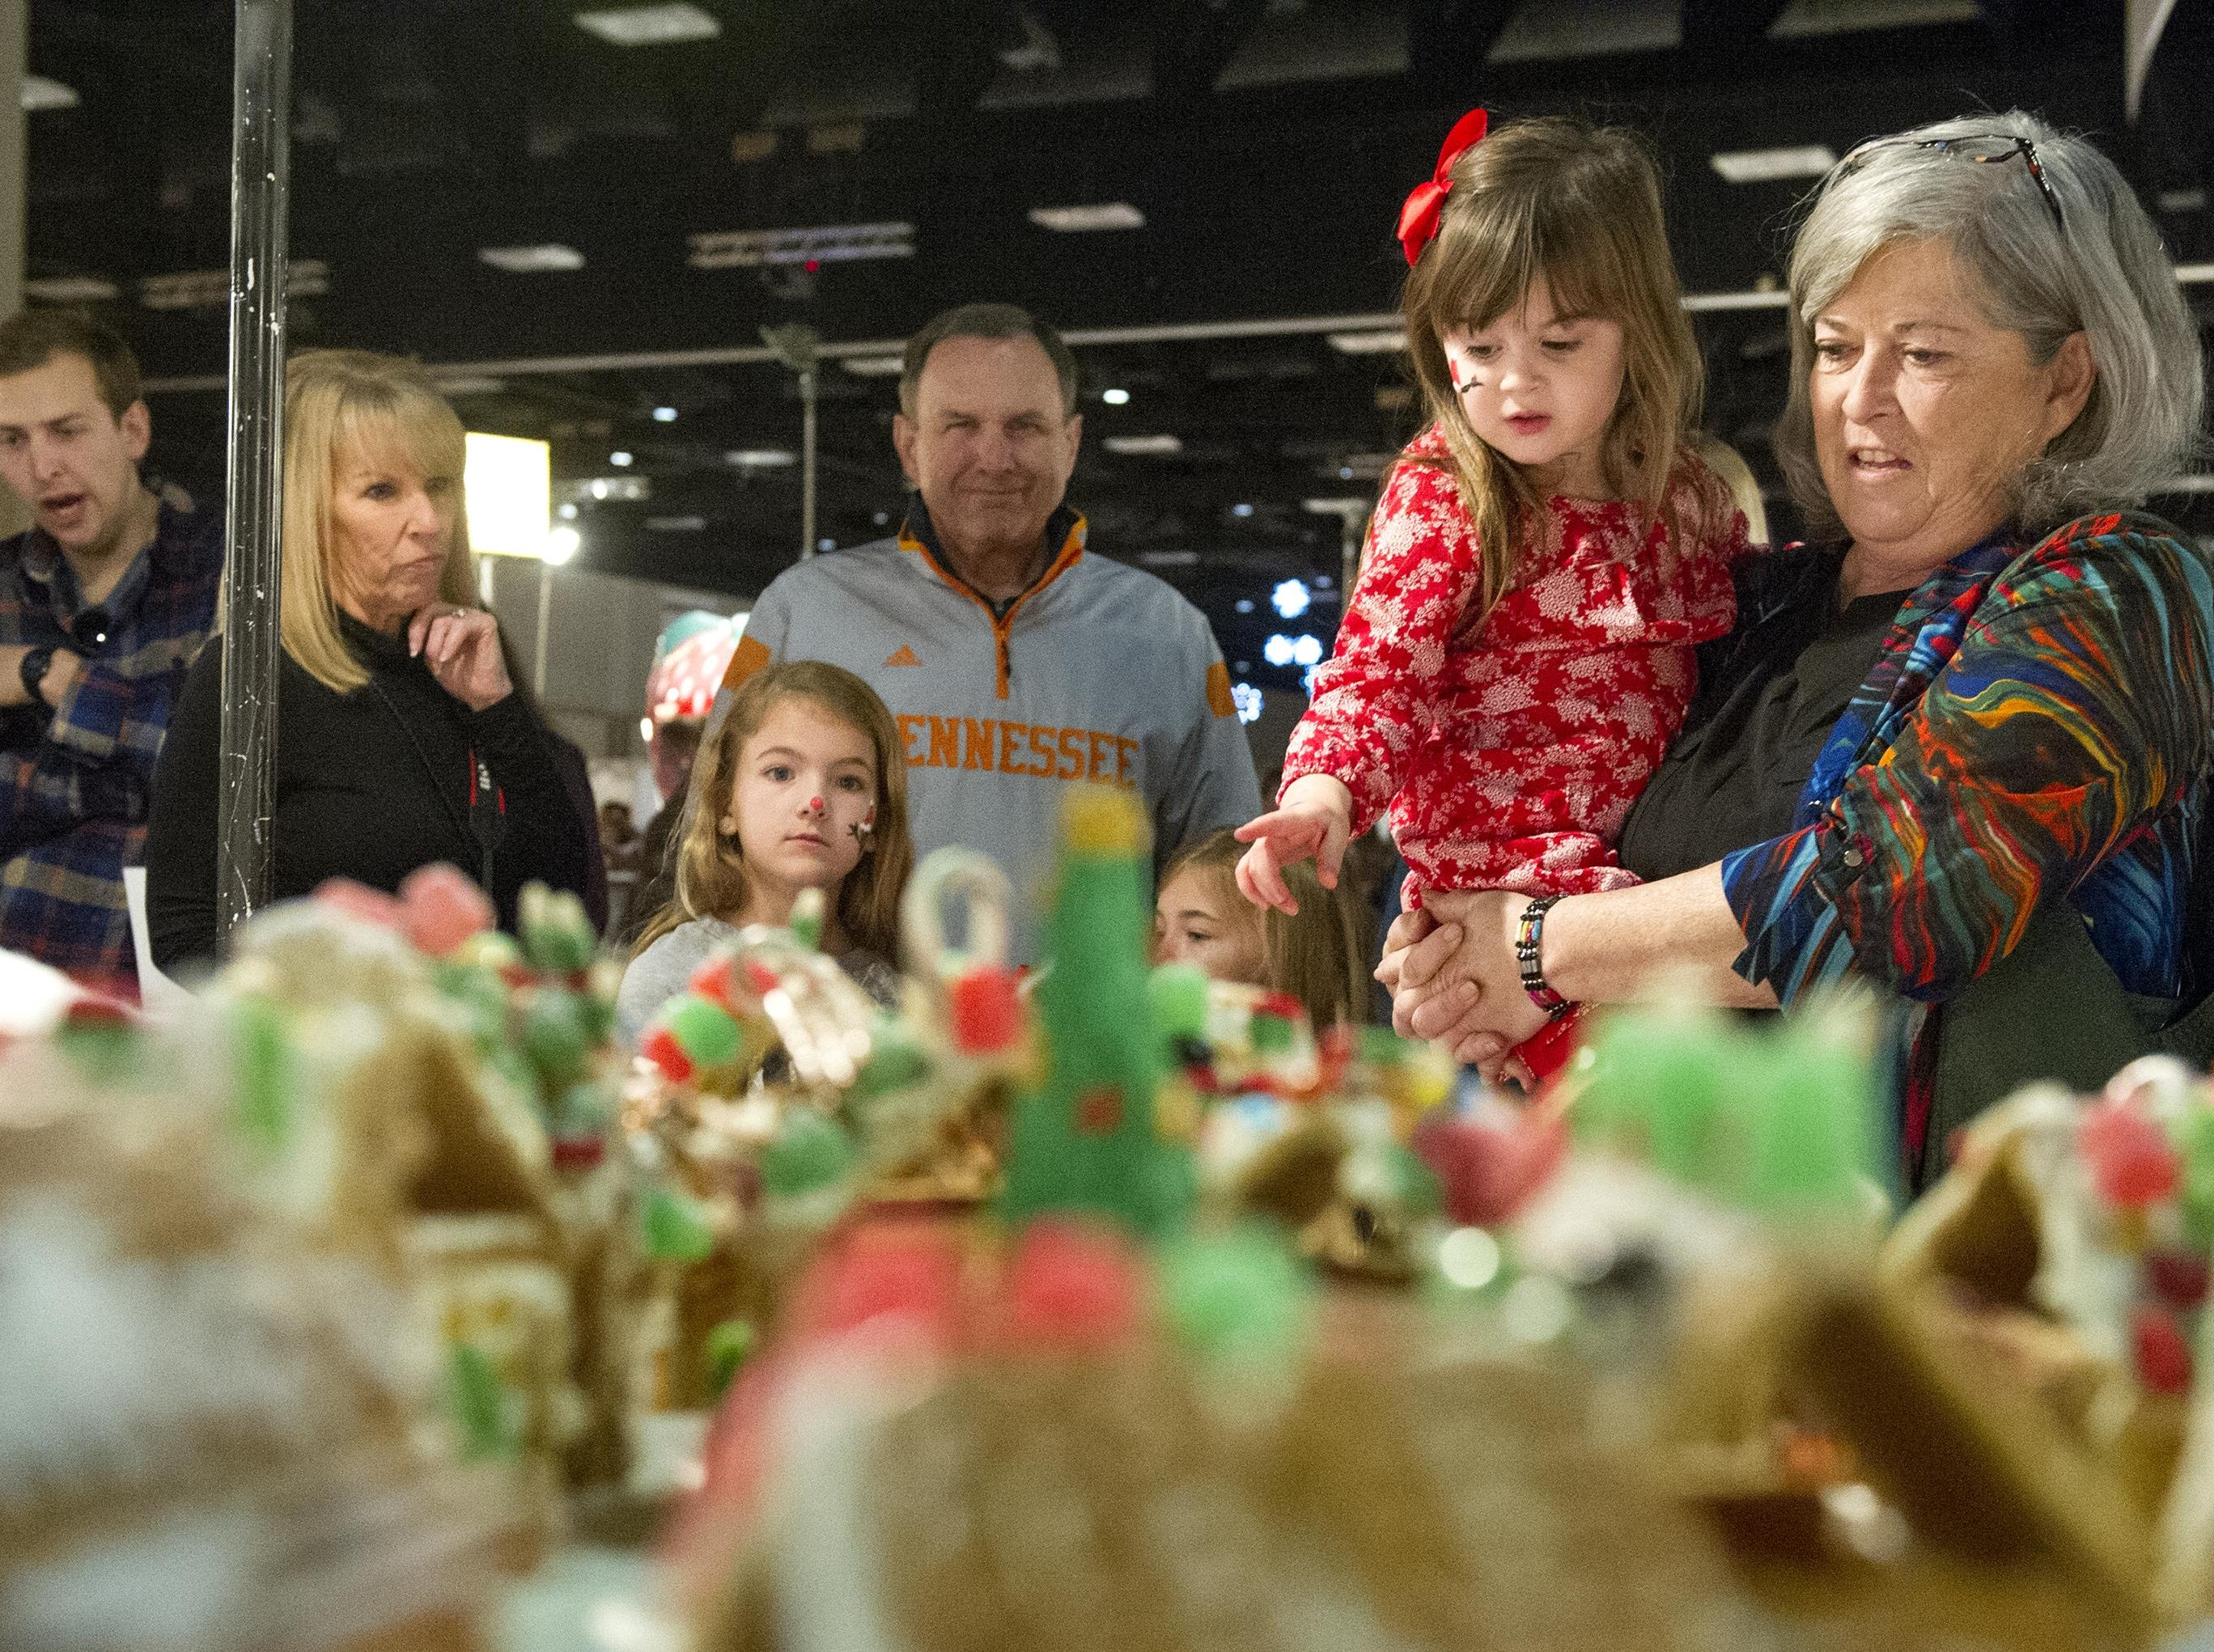 Eirelyn Friel, 3, and Judy Sansak both of Lansing look at the large variety of gingerbread houses during the Fantasy of Trees at the Knoxville Convention Center Wednesday, Nov. 25, 2015. (JESSICA TEZAK/NEWS SENTINEL)